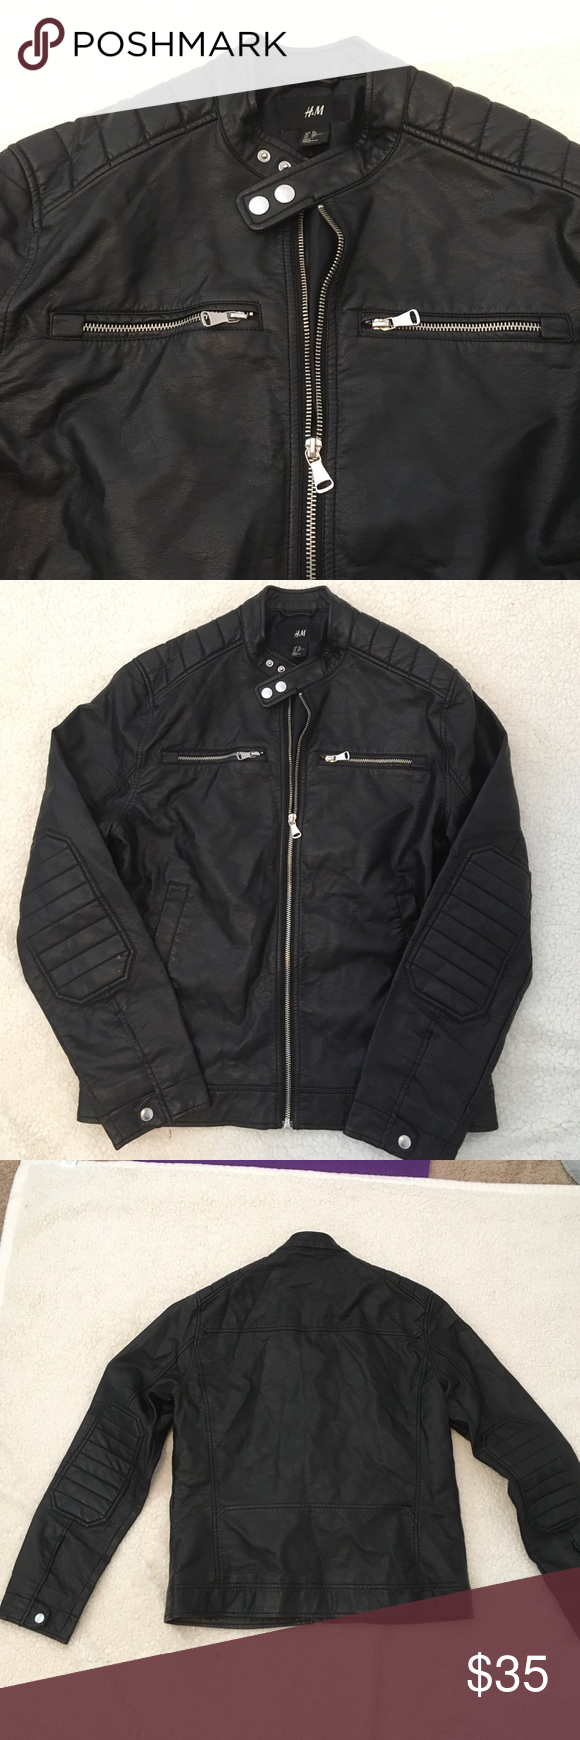 Men's H&M Leather Jacket NOT real leather. Only worn a few